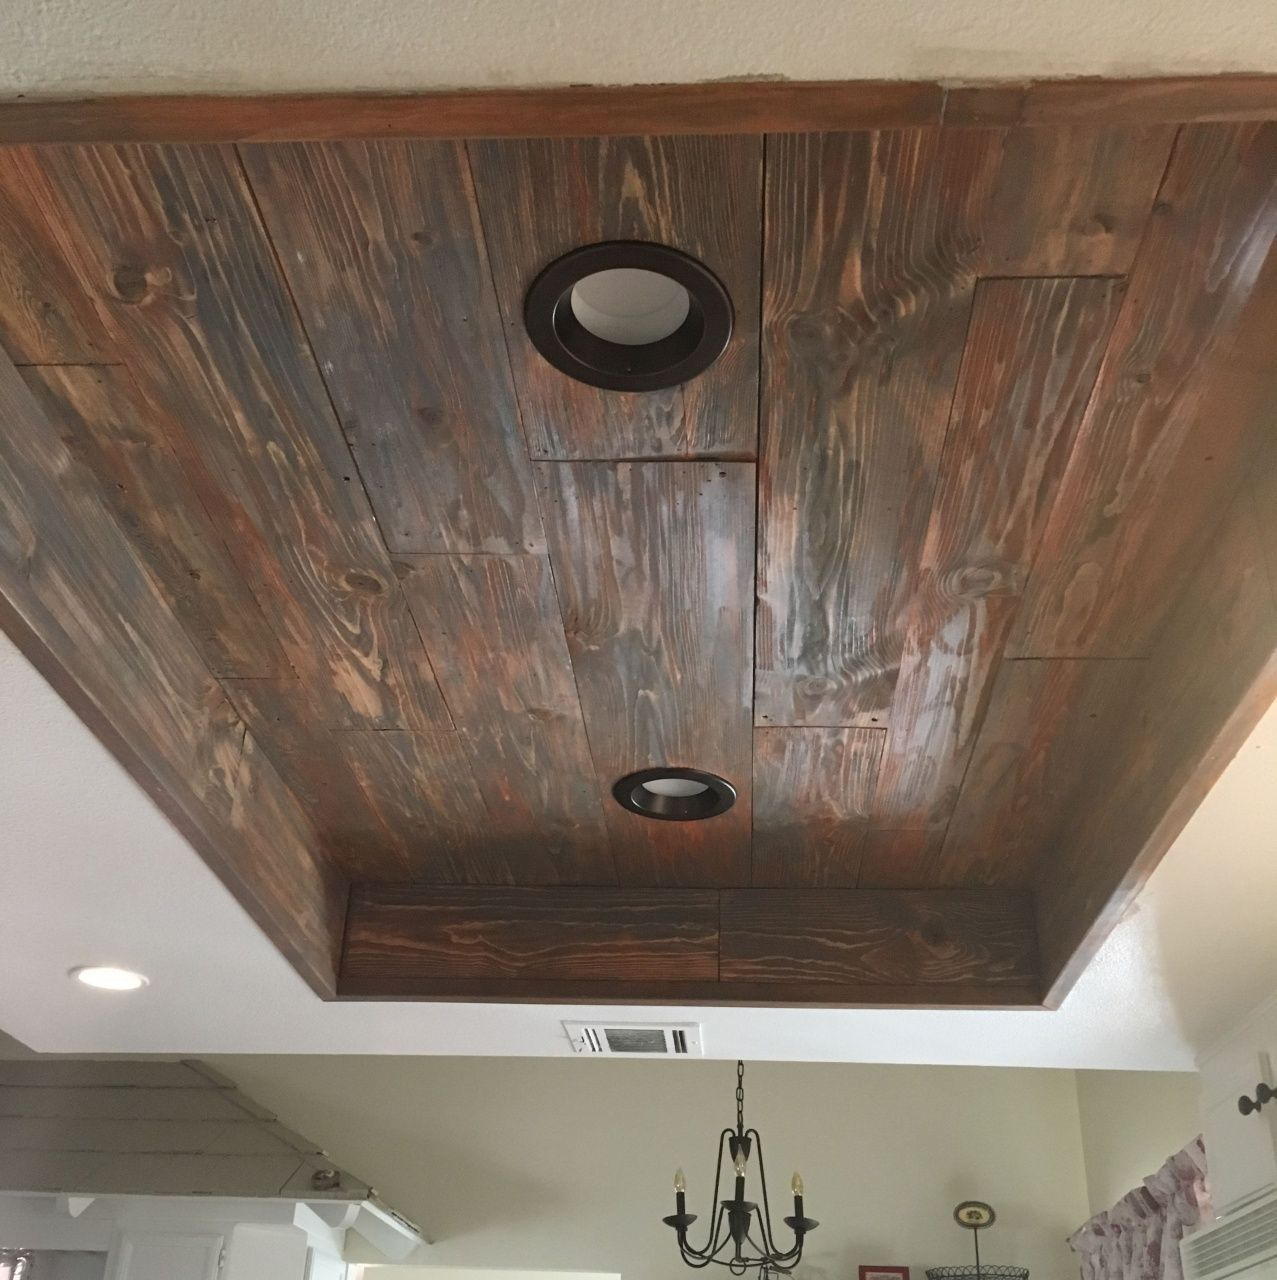 Ideas For Replacing Fluorescent Lighting Boxes Boxes Fluorescent Ideas Lighti Boxe Recessed Lighting Fixtures Recessed Ceiling Fluorescent Kitchen Lights